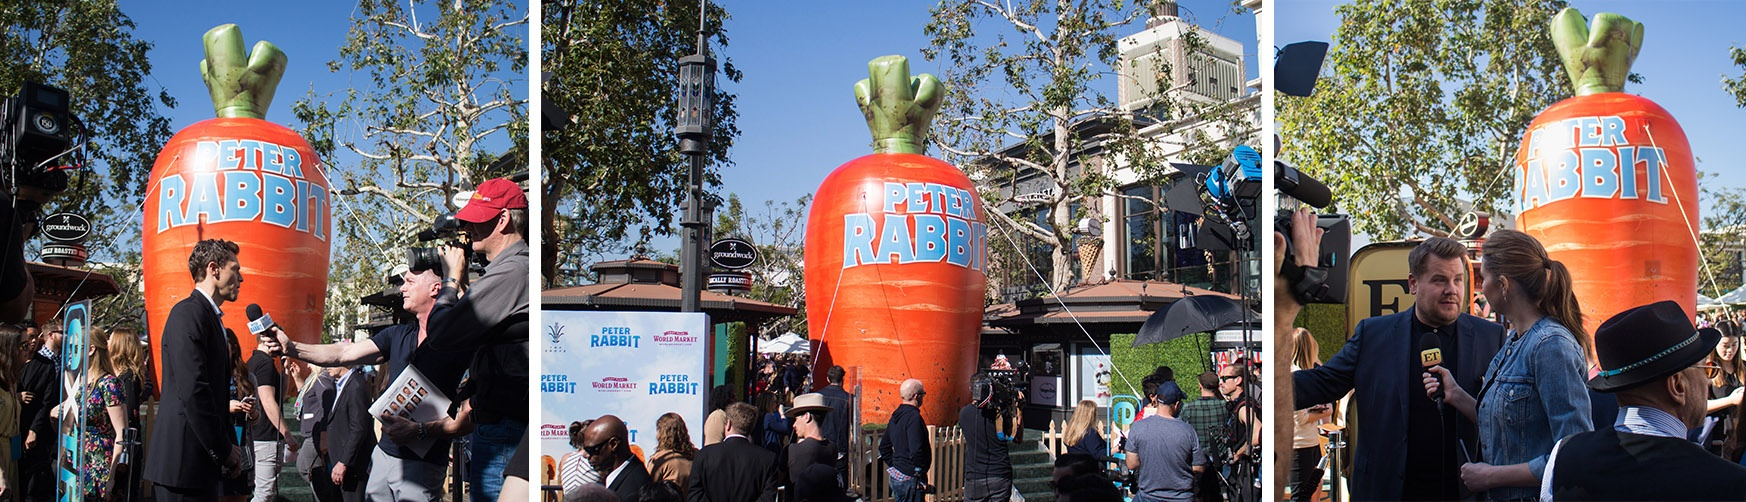 Peter Rabbit inflatable carrot installed at the grove for the premier of the Peter Rabbit movie- Header for Custom Inflatables